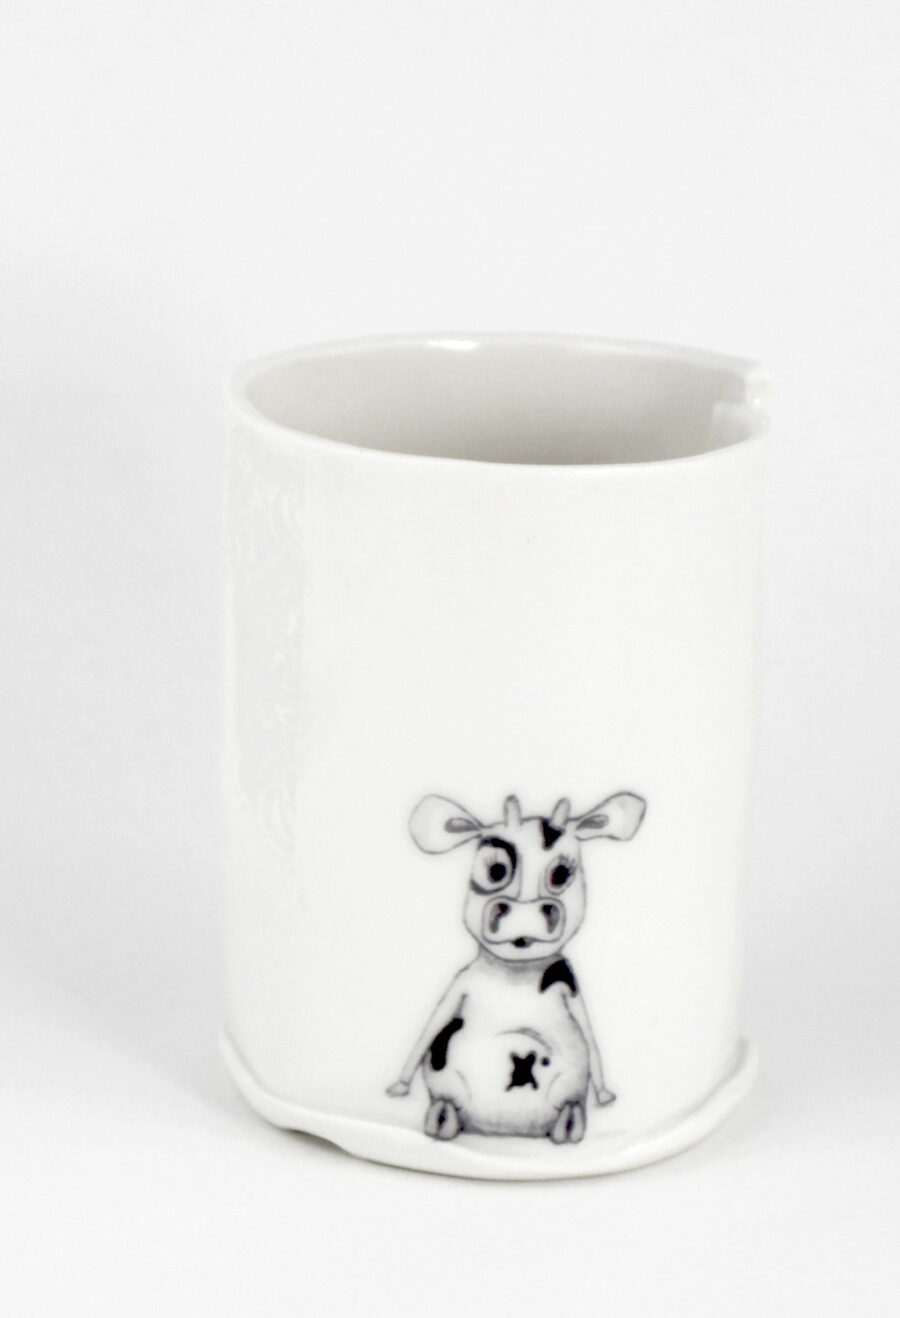 modernes-design-porzellanbecher-kuh-cow-illustration-mm-am-viehtheater-my_deer-illustrated-ceramics